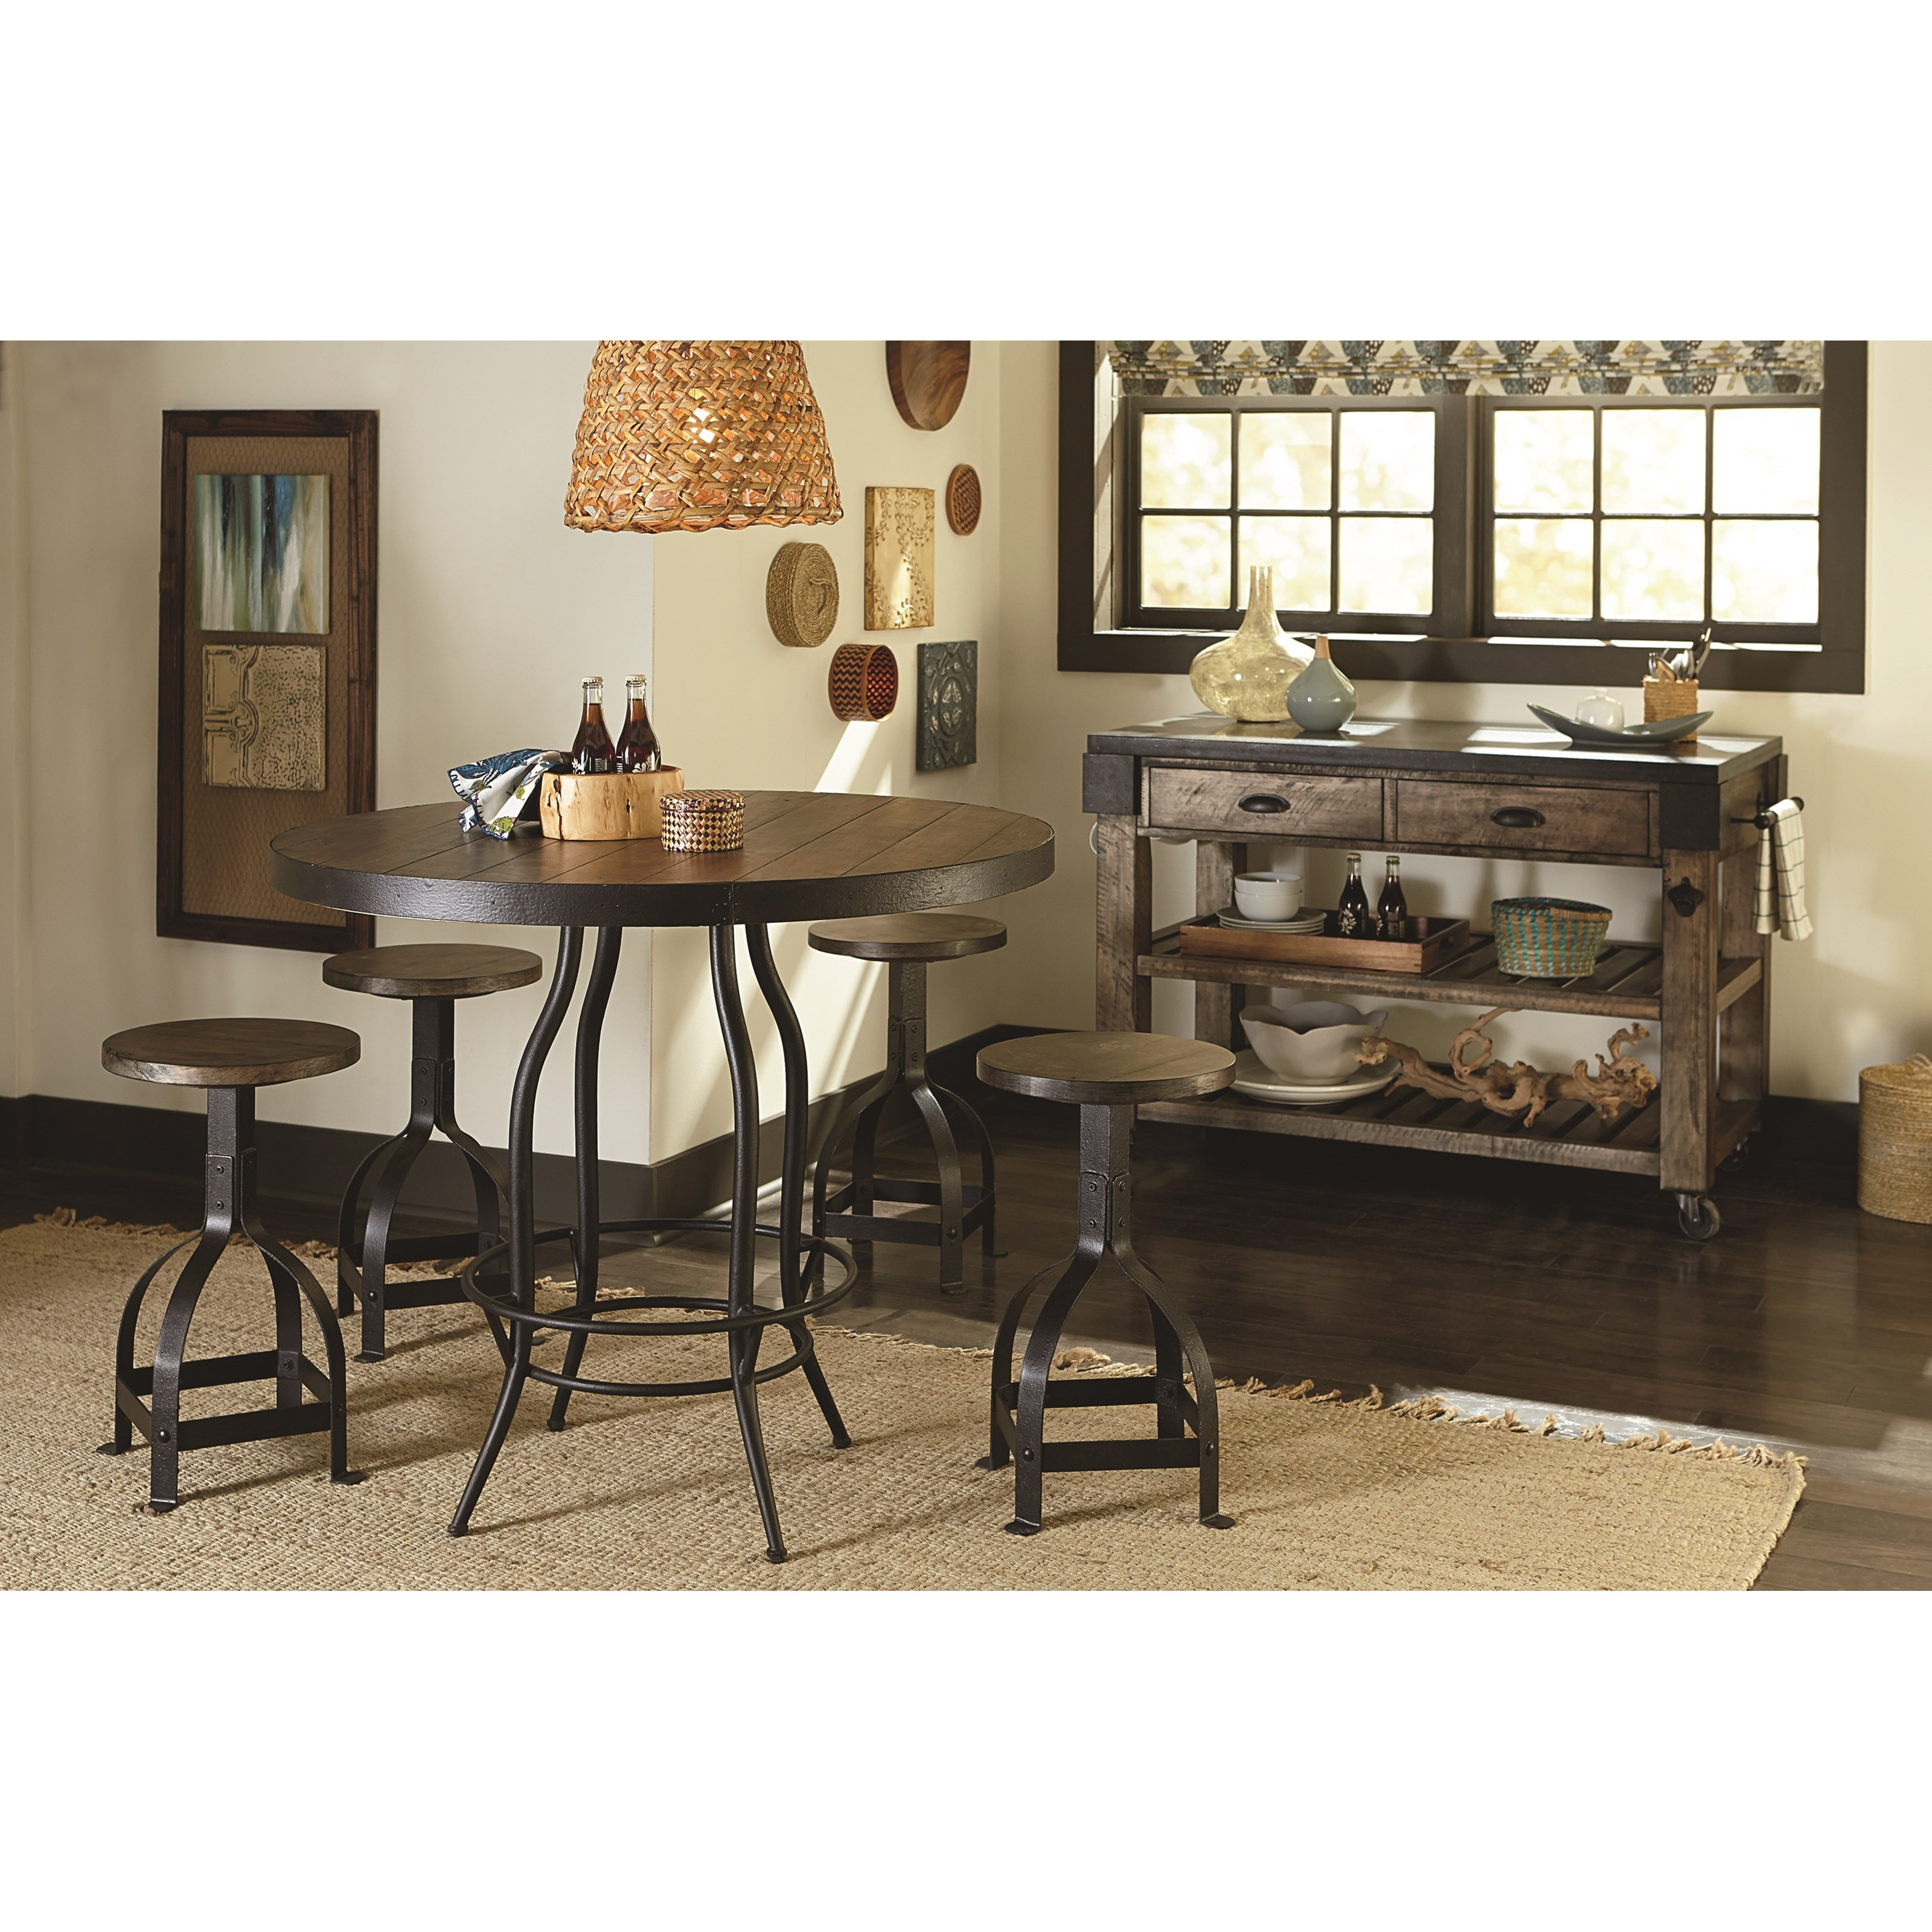 Kitchen Table Queens Quay: TABLE TRENDS Hidden Treasures Storage Kitchen Island With